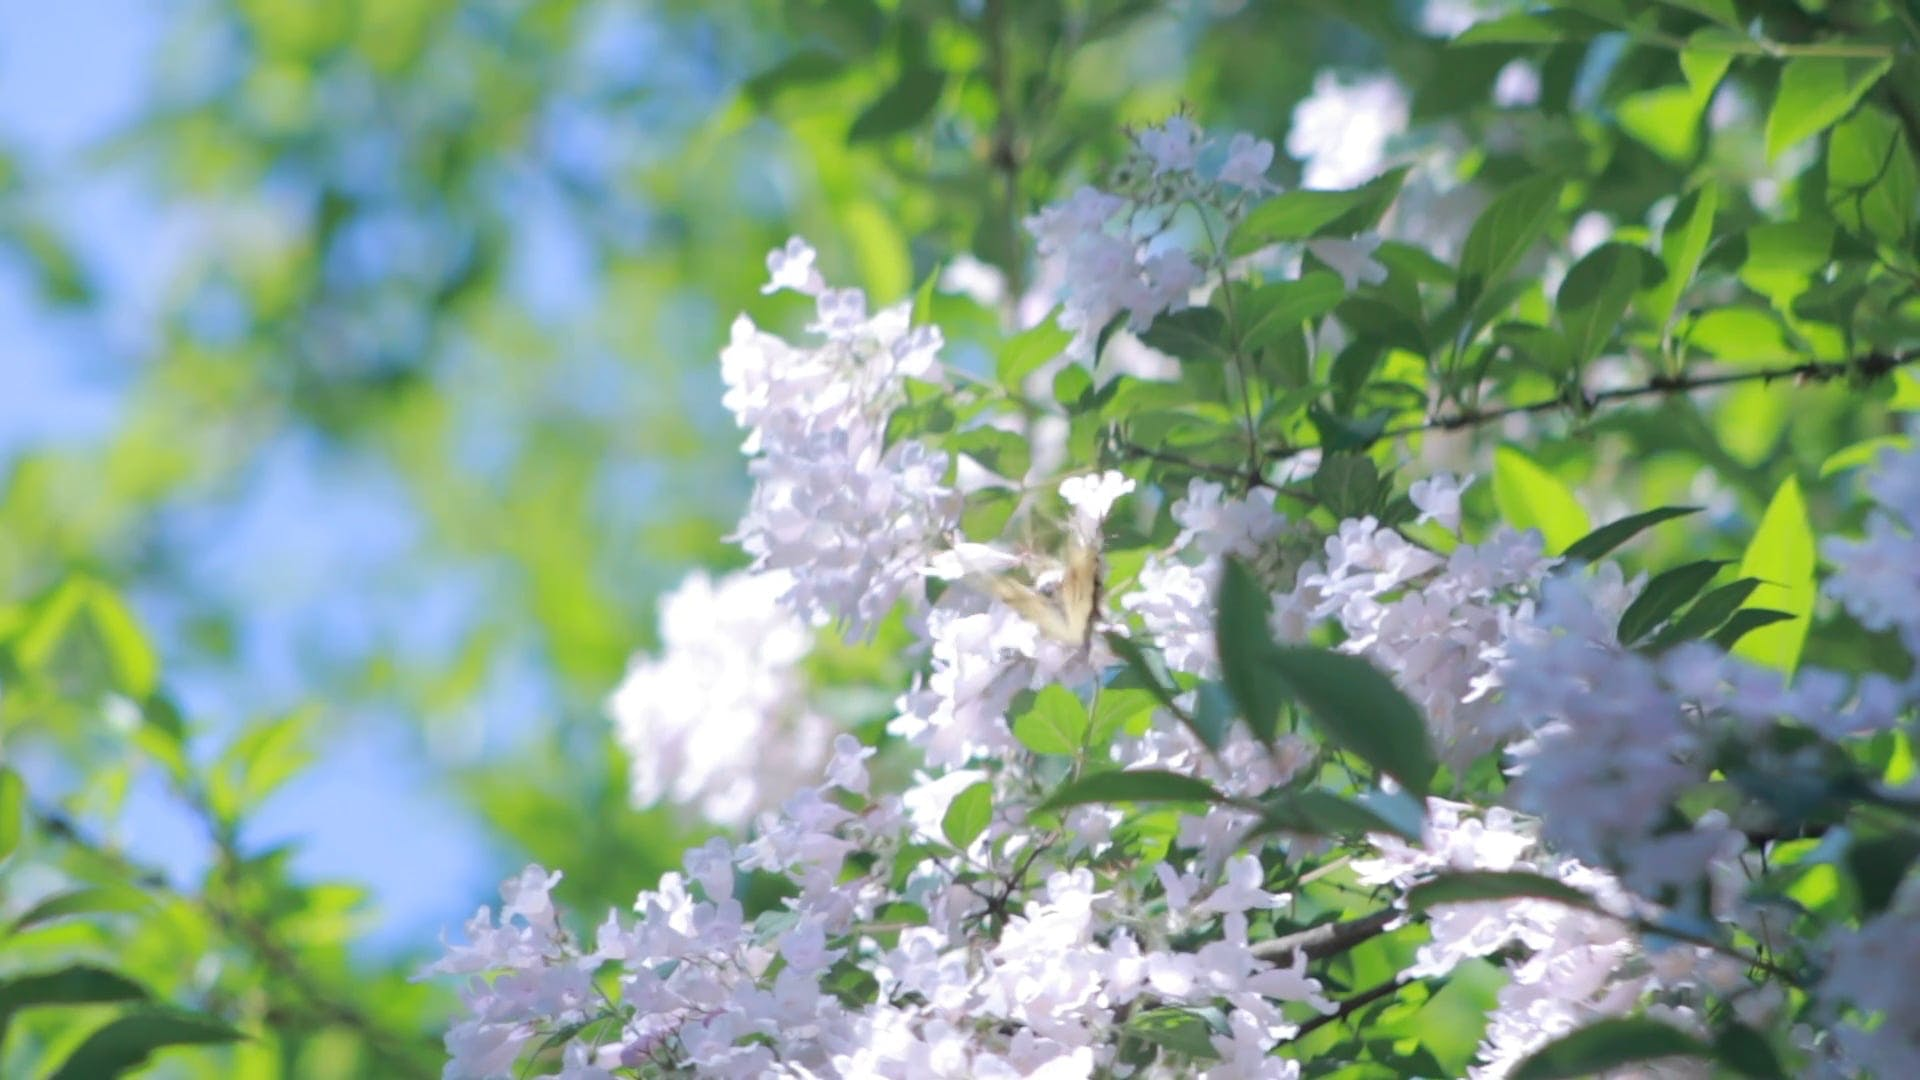 Butterfly Flying Around White Flowers